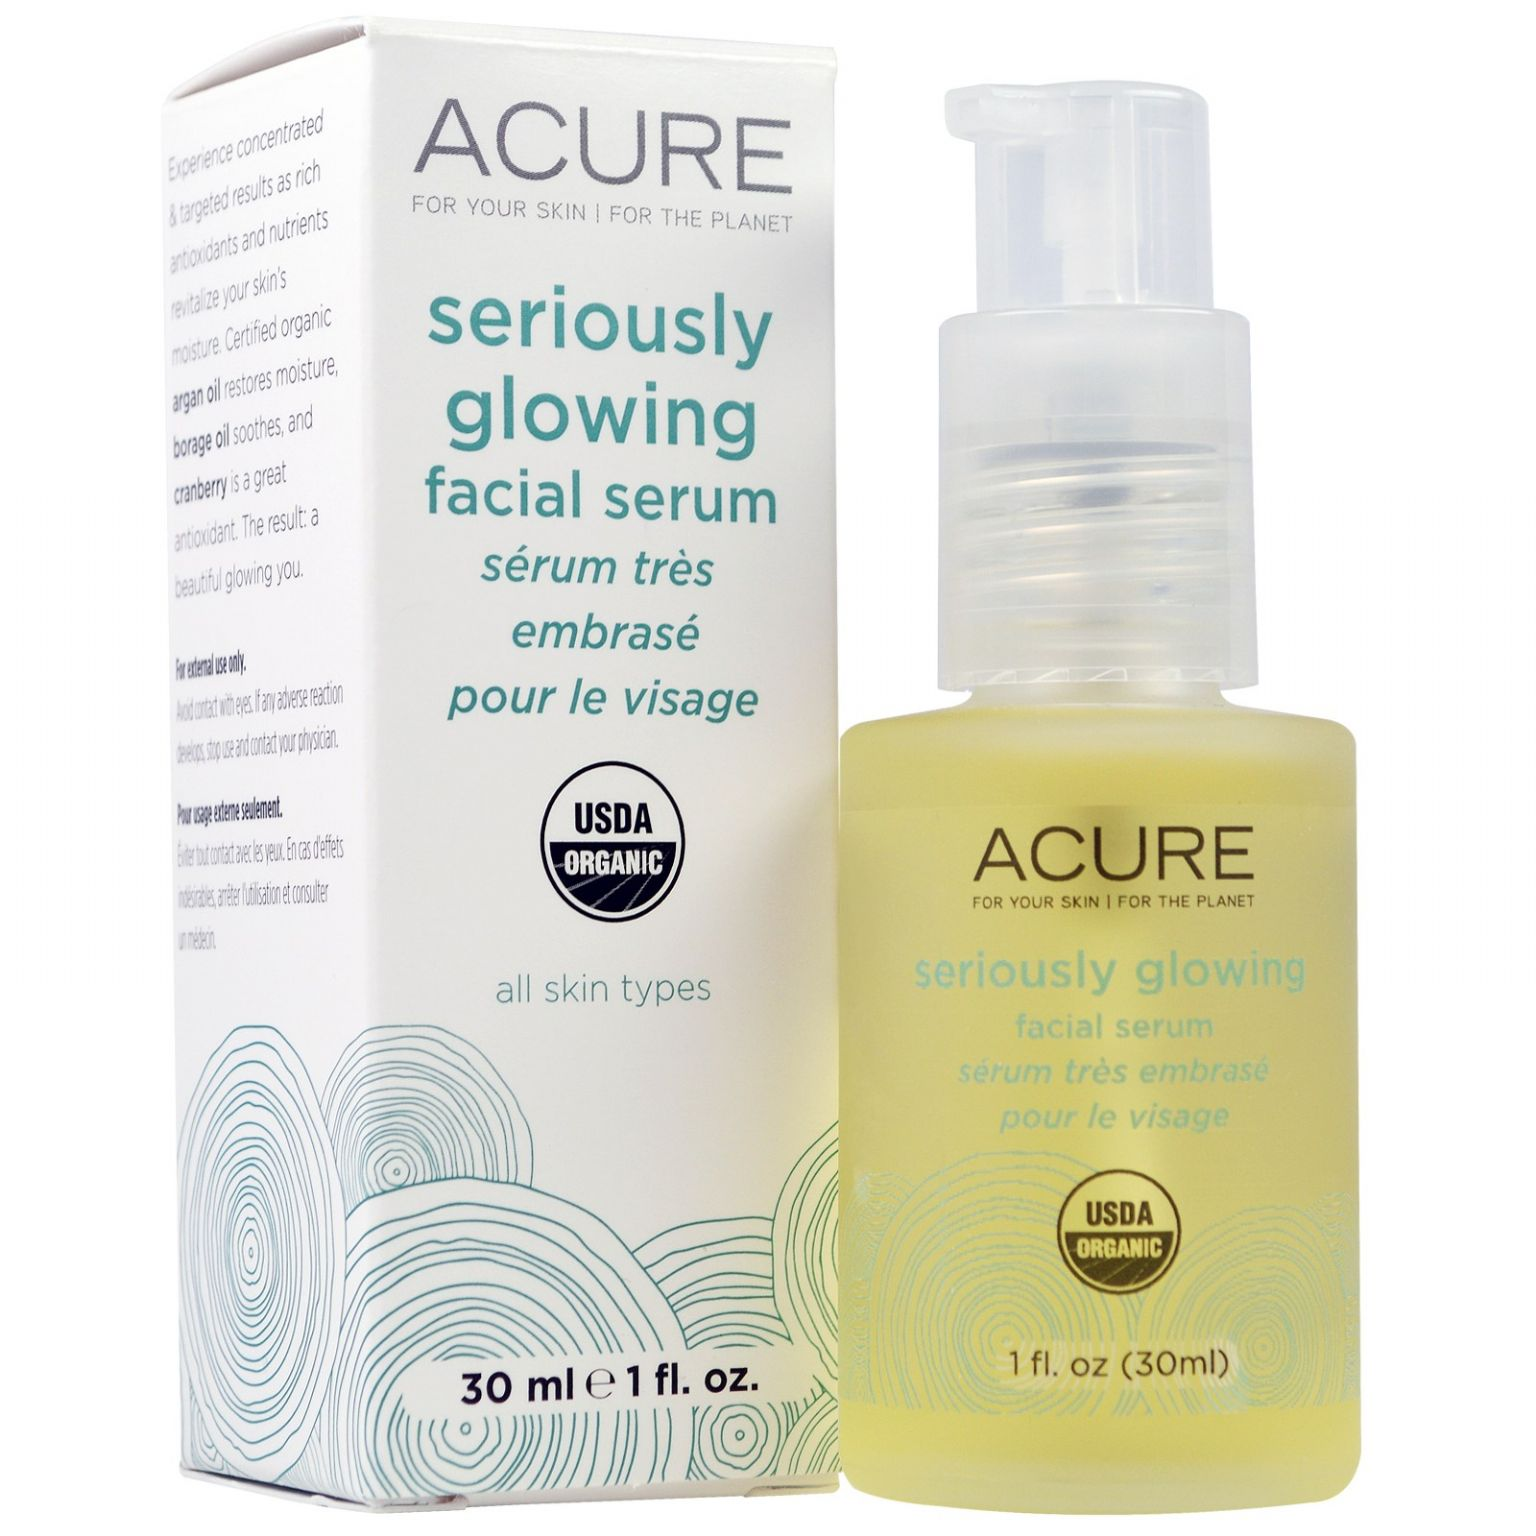 Acure Organics Seriously Glowing Facial Serum Reviews